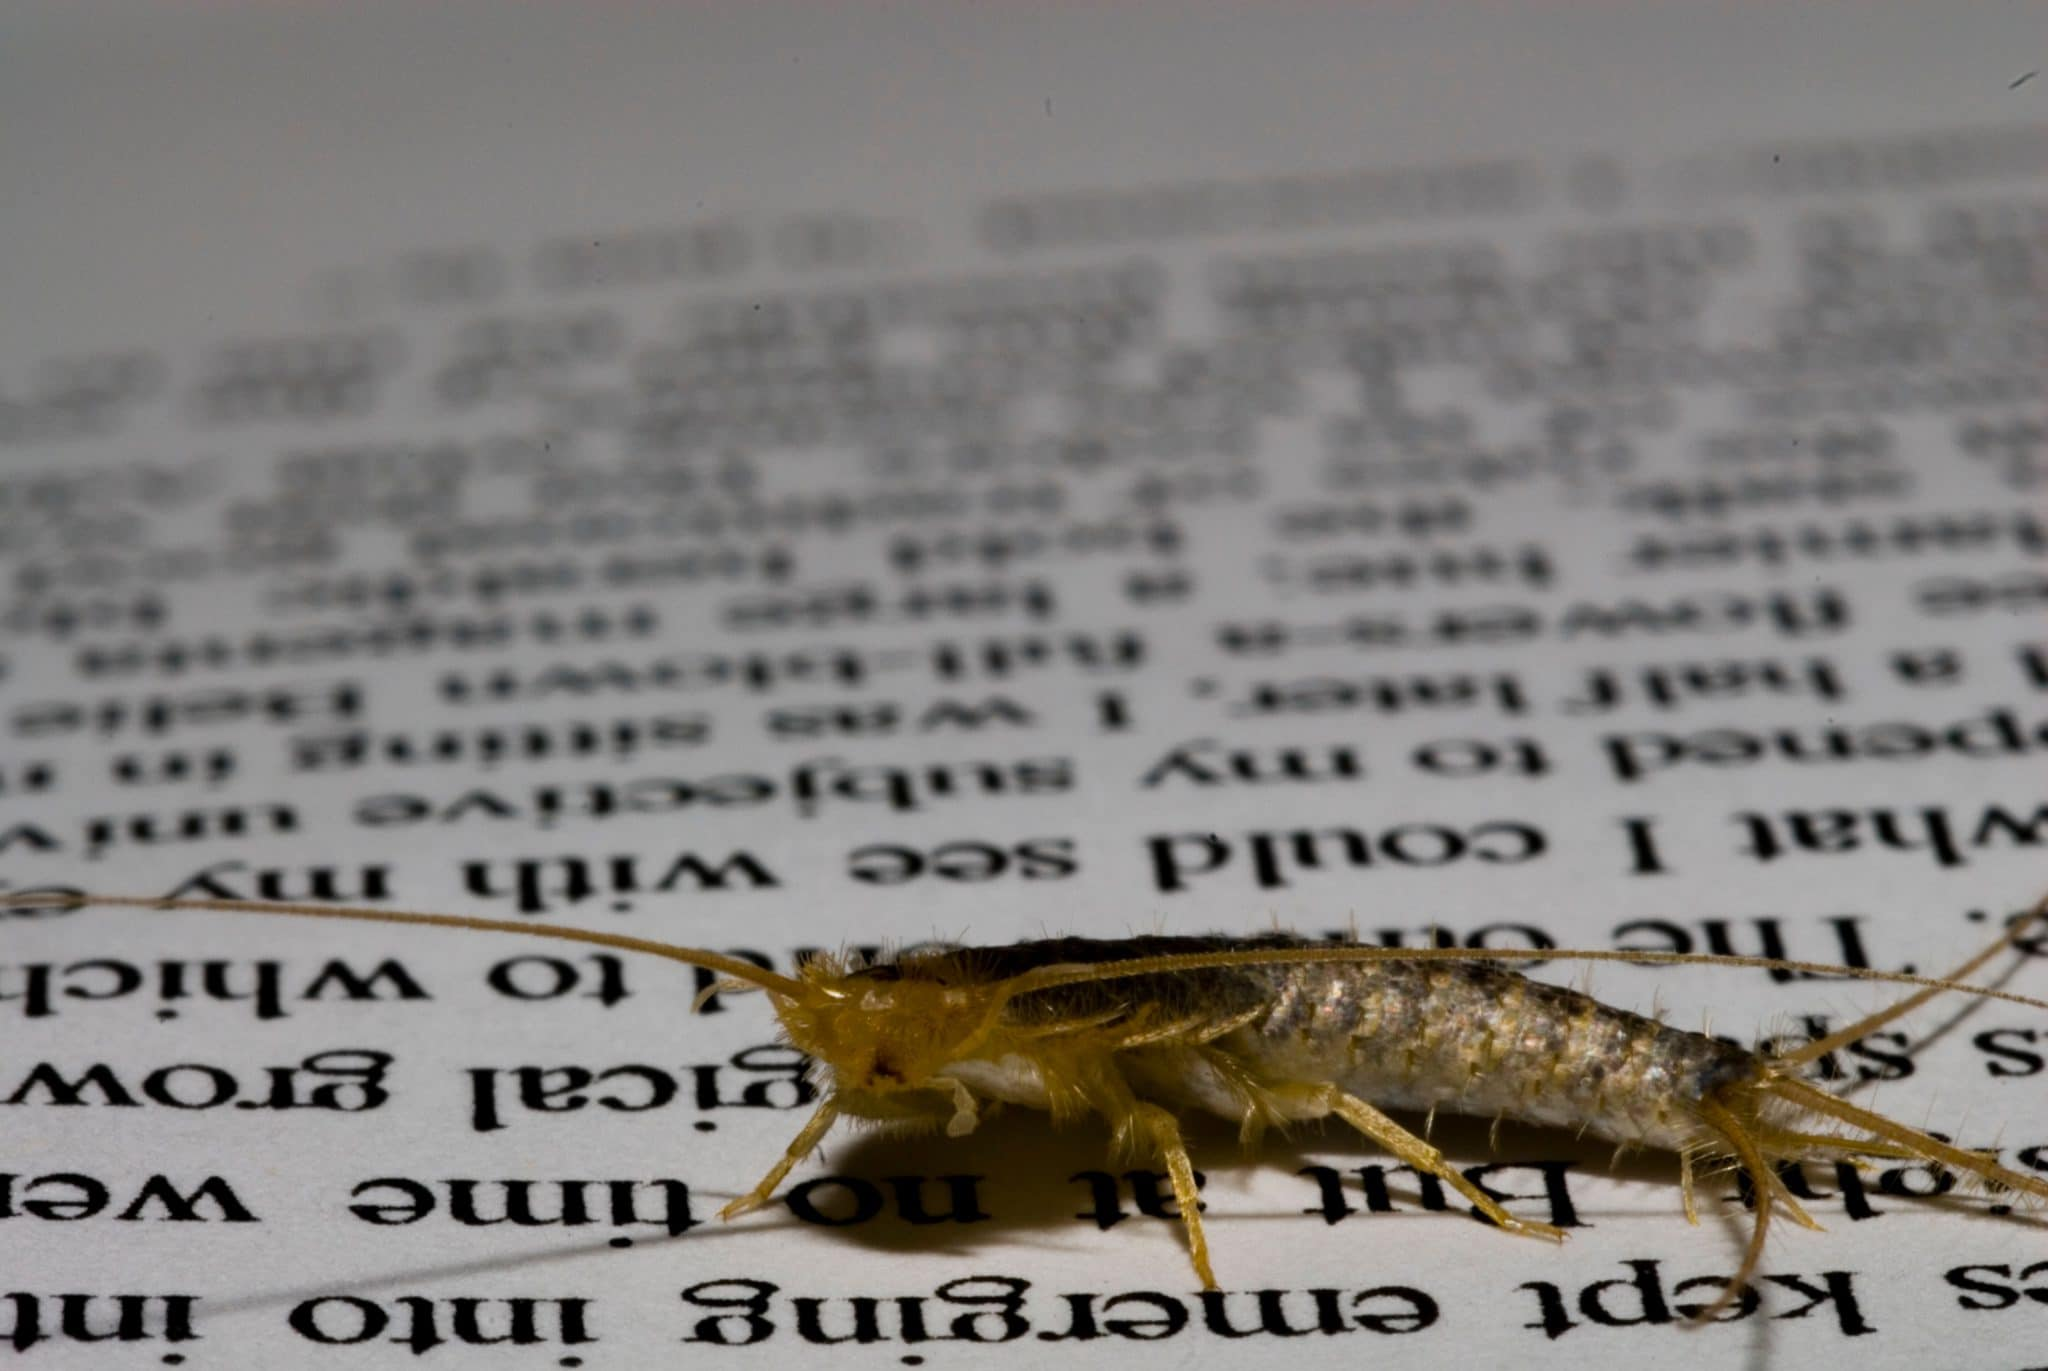 a silverfish on a document